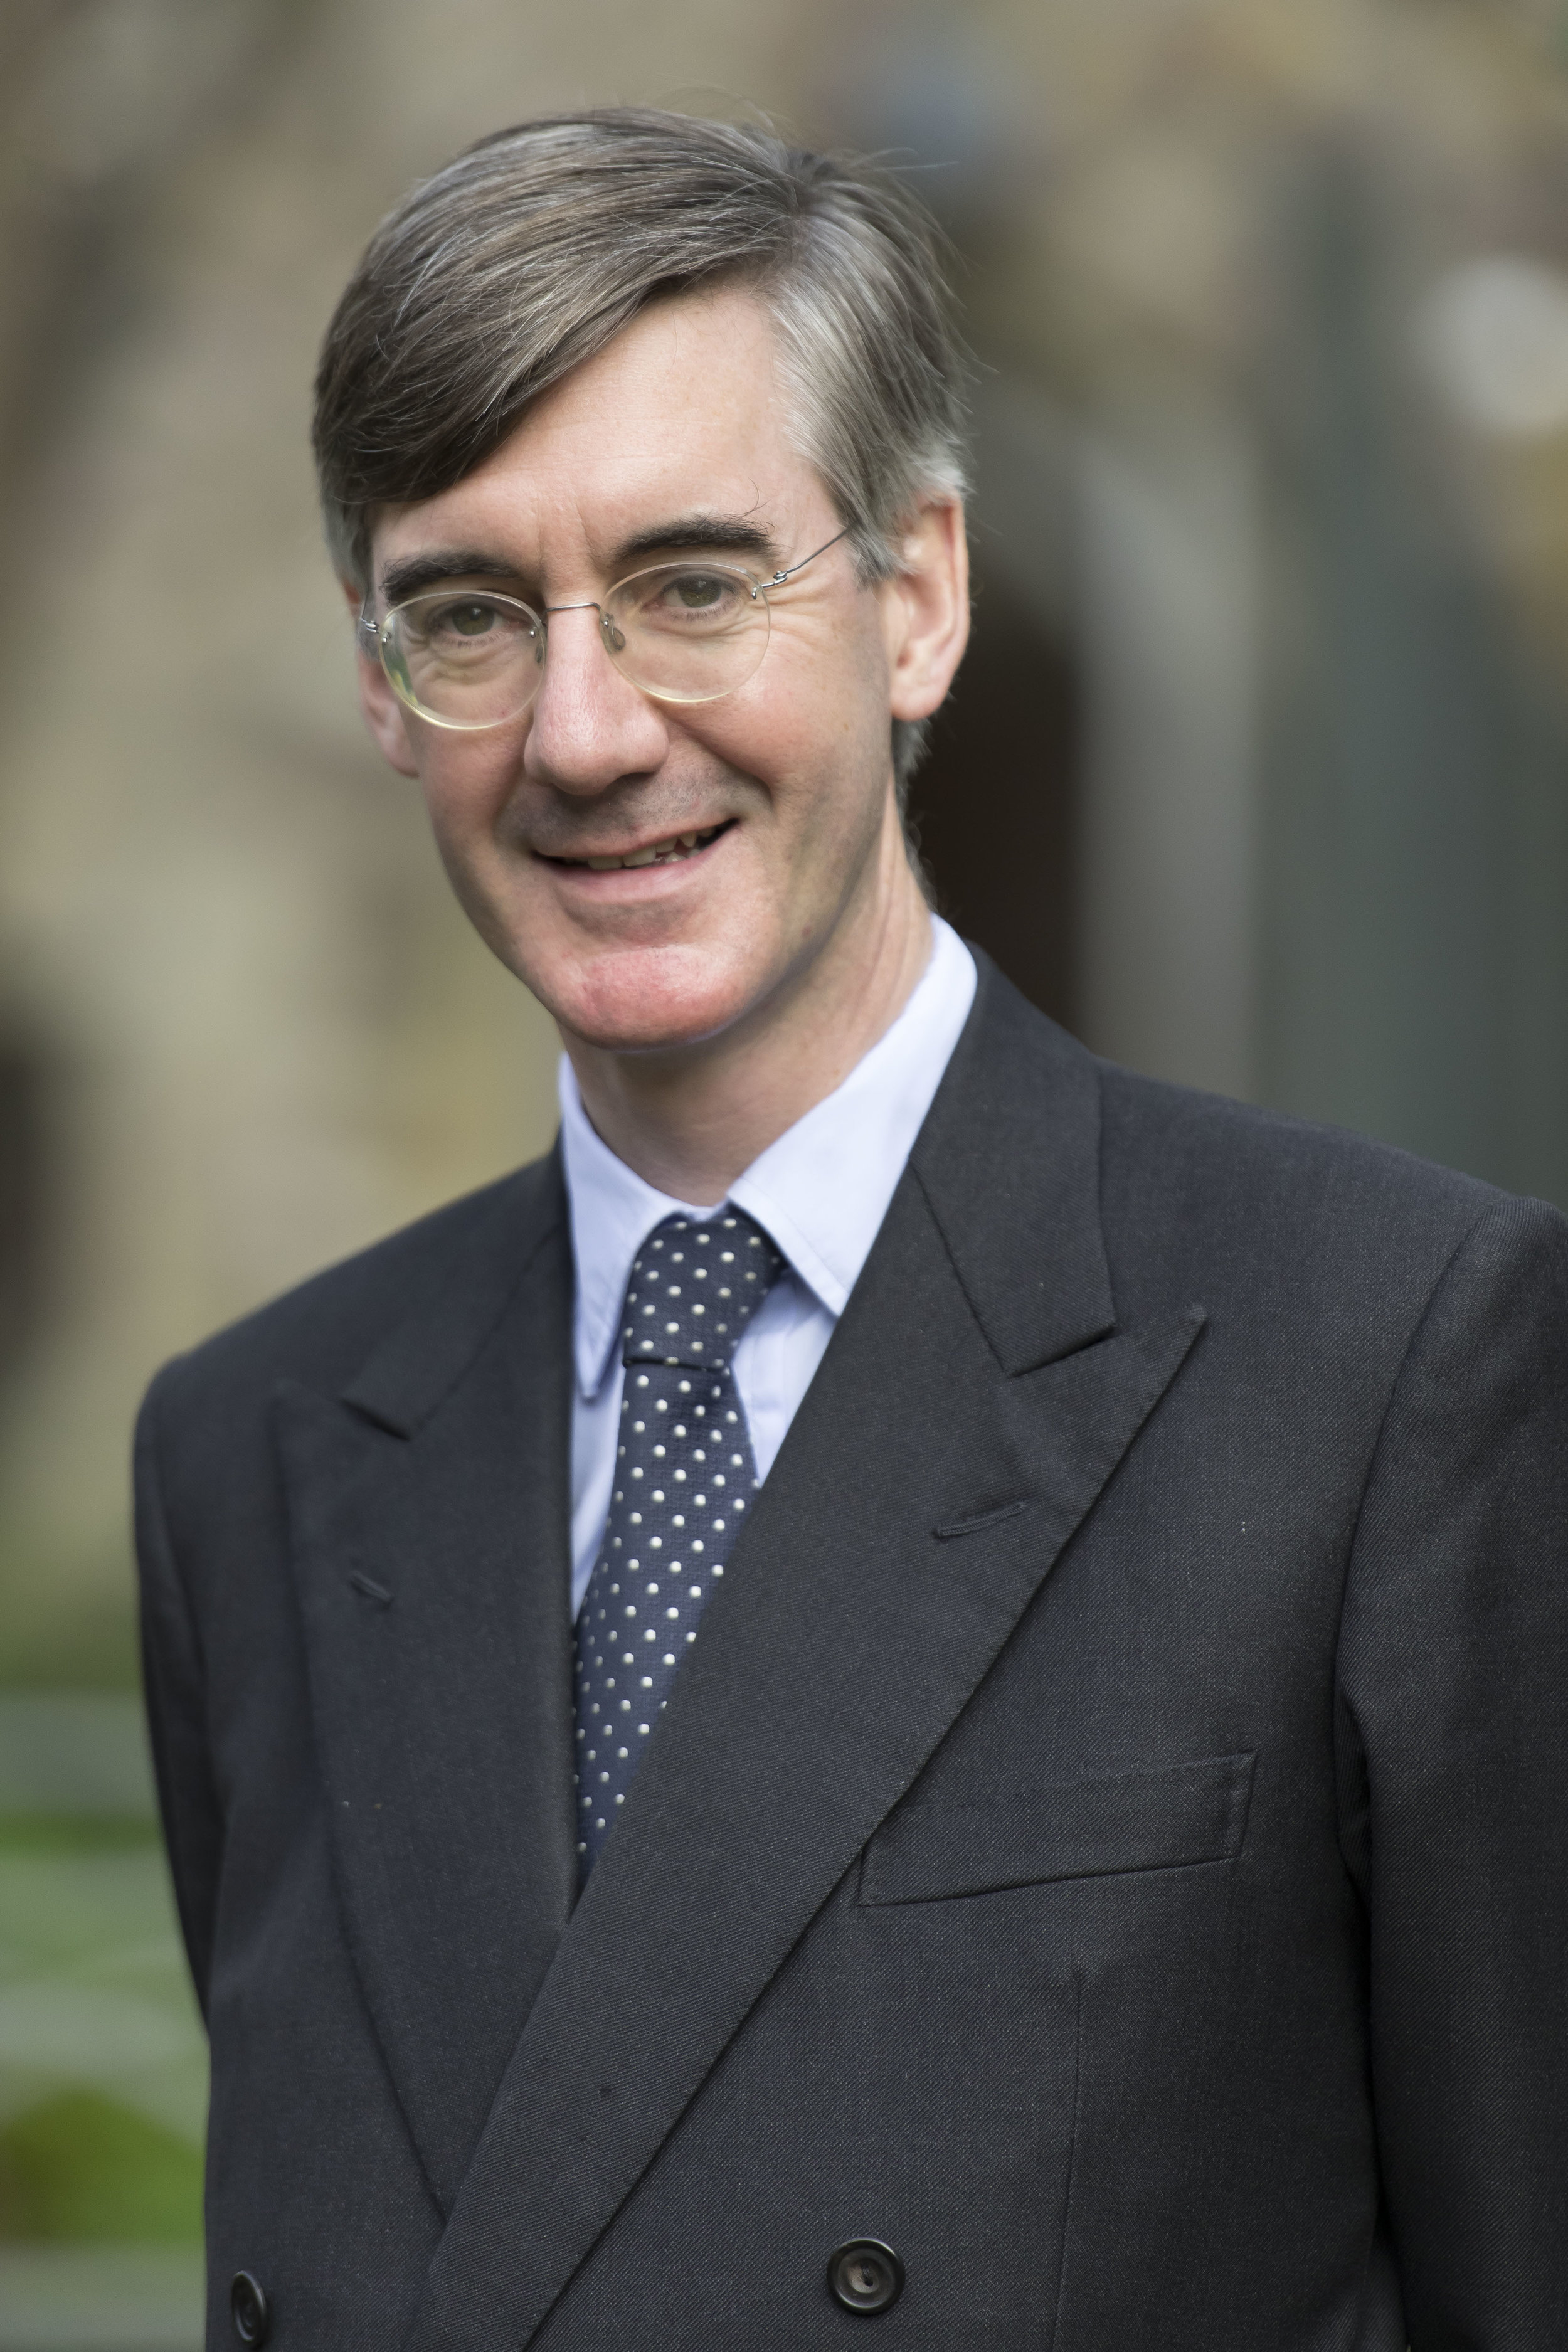 """CARDIFF, WALES - SEPTEMBER 29: Jacob Rees-Mogg, MP for North East Somerset, poses for a picture following a talk called Faith in the Future at the Cornerstone Church on September 29, 2017 in Cardiff, Wales. The talk, titled """"Faith in the Future"""", explores issues surrounding the importance of faith in the public and private life of our society. Jacob Rees-Mogg has recently caused controversy over his opposition to abortion after rape or incest. (Photo by Matthew Horwood/Getty Images)"""